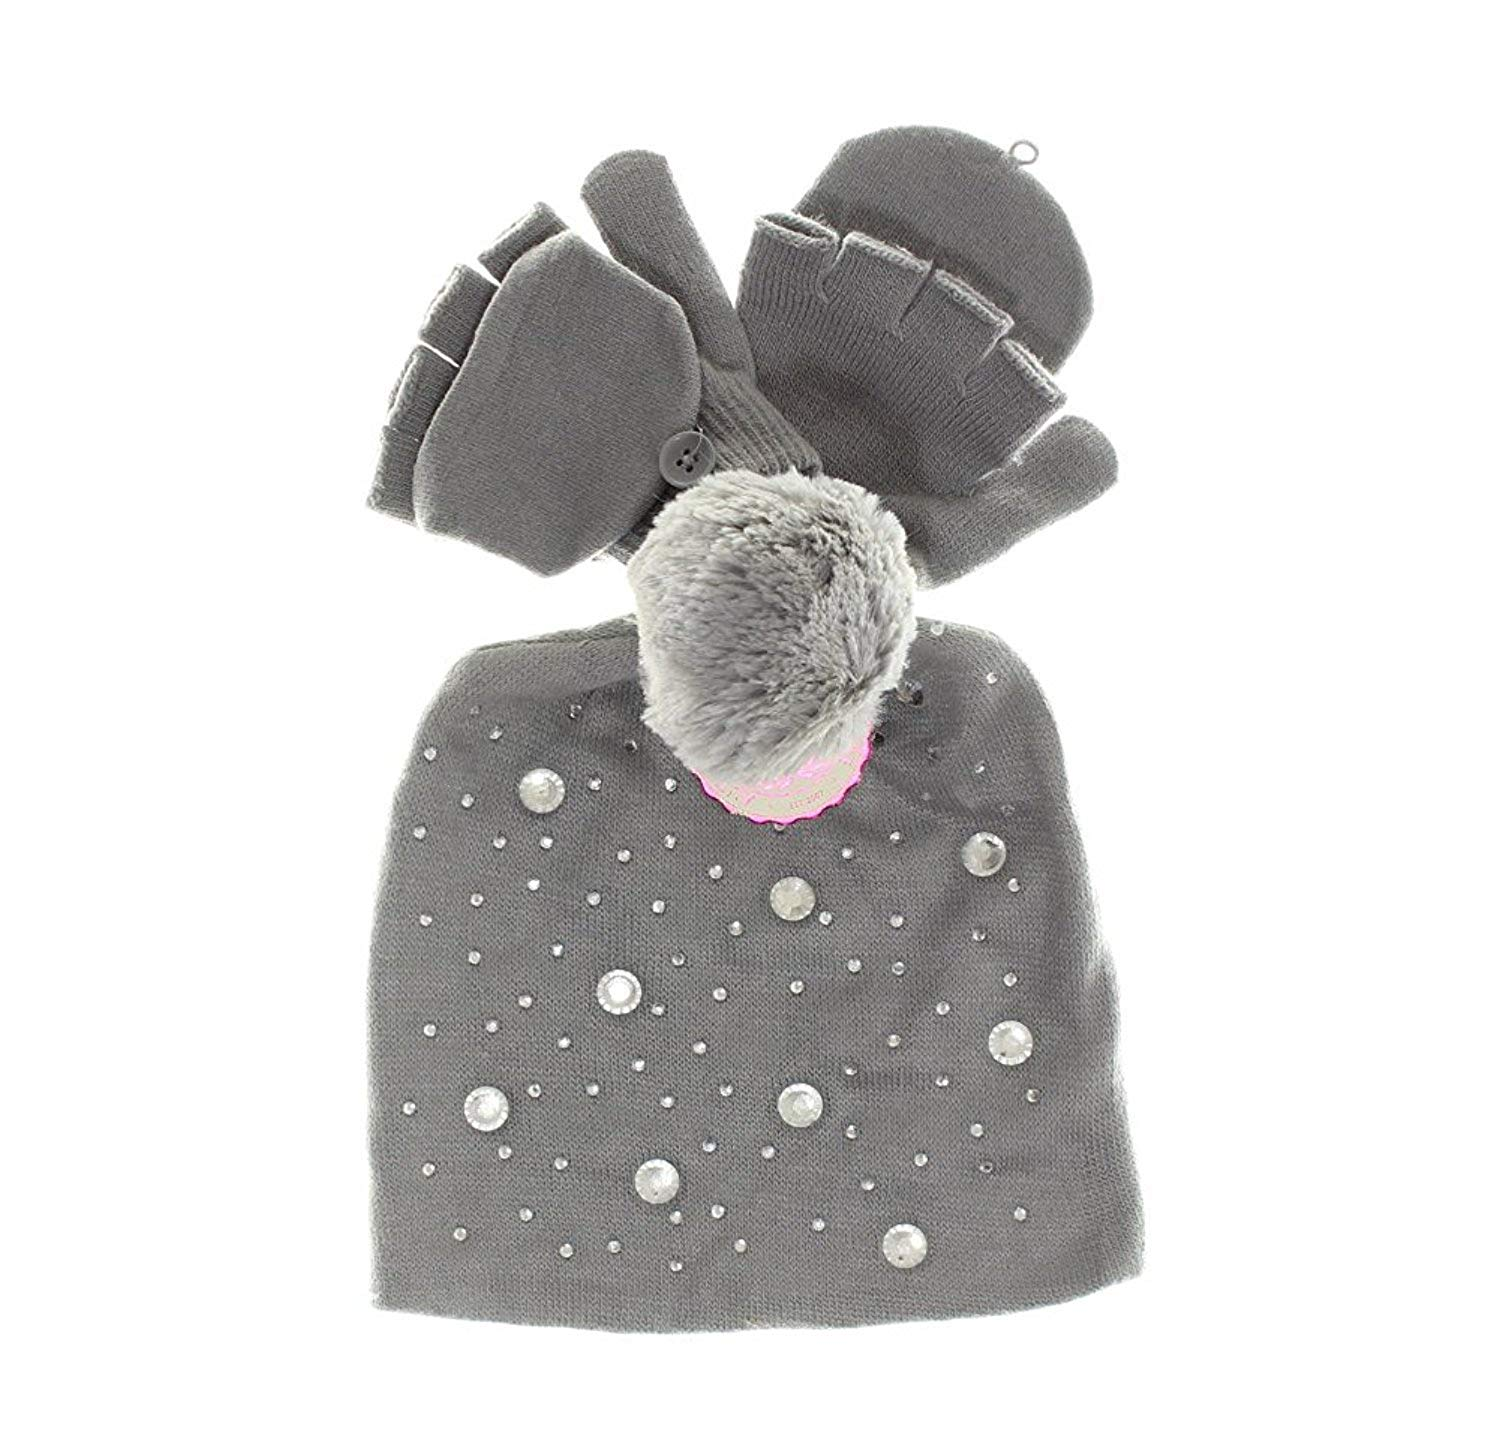 ec675012673 Get Quotations · SO Girls Jewel Embellished Hat   Gloves   Convertible  Mittens Set - Ivory